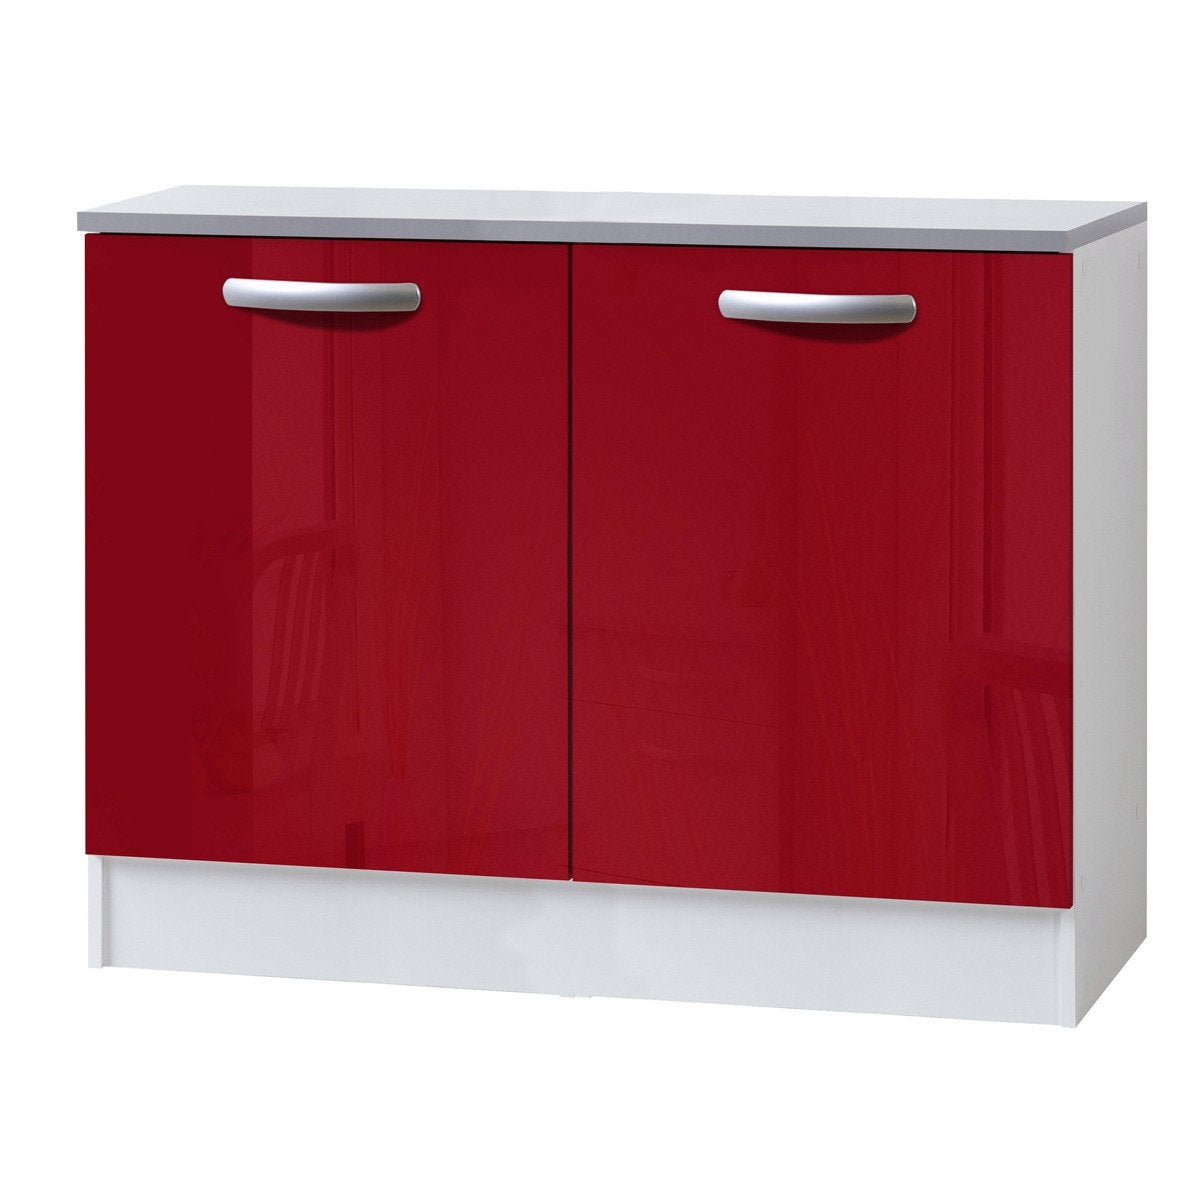 Meuble de cuisine bas 2 portes rouge brillant h86x l120x for Meuble bas 3 portes